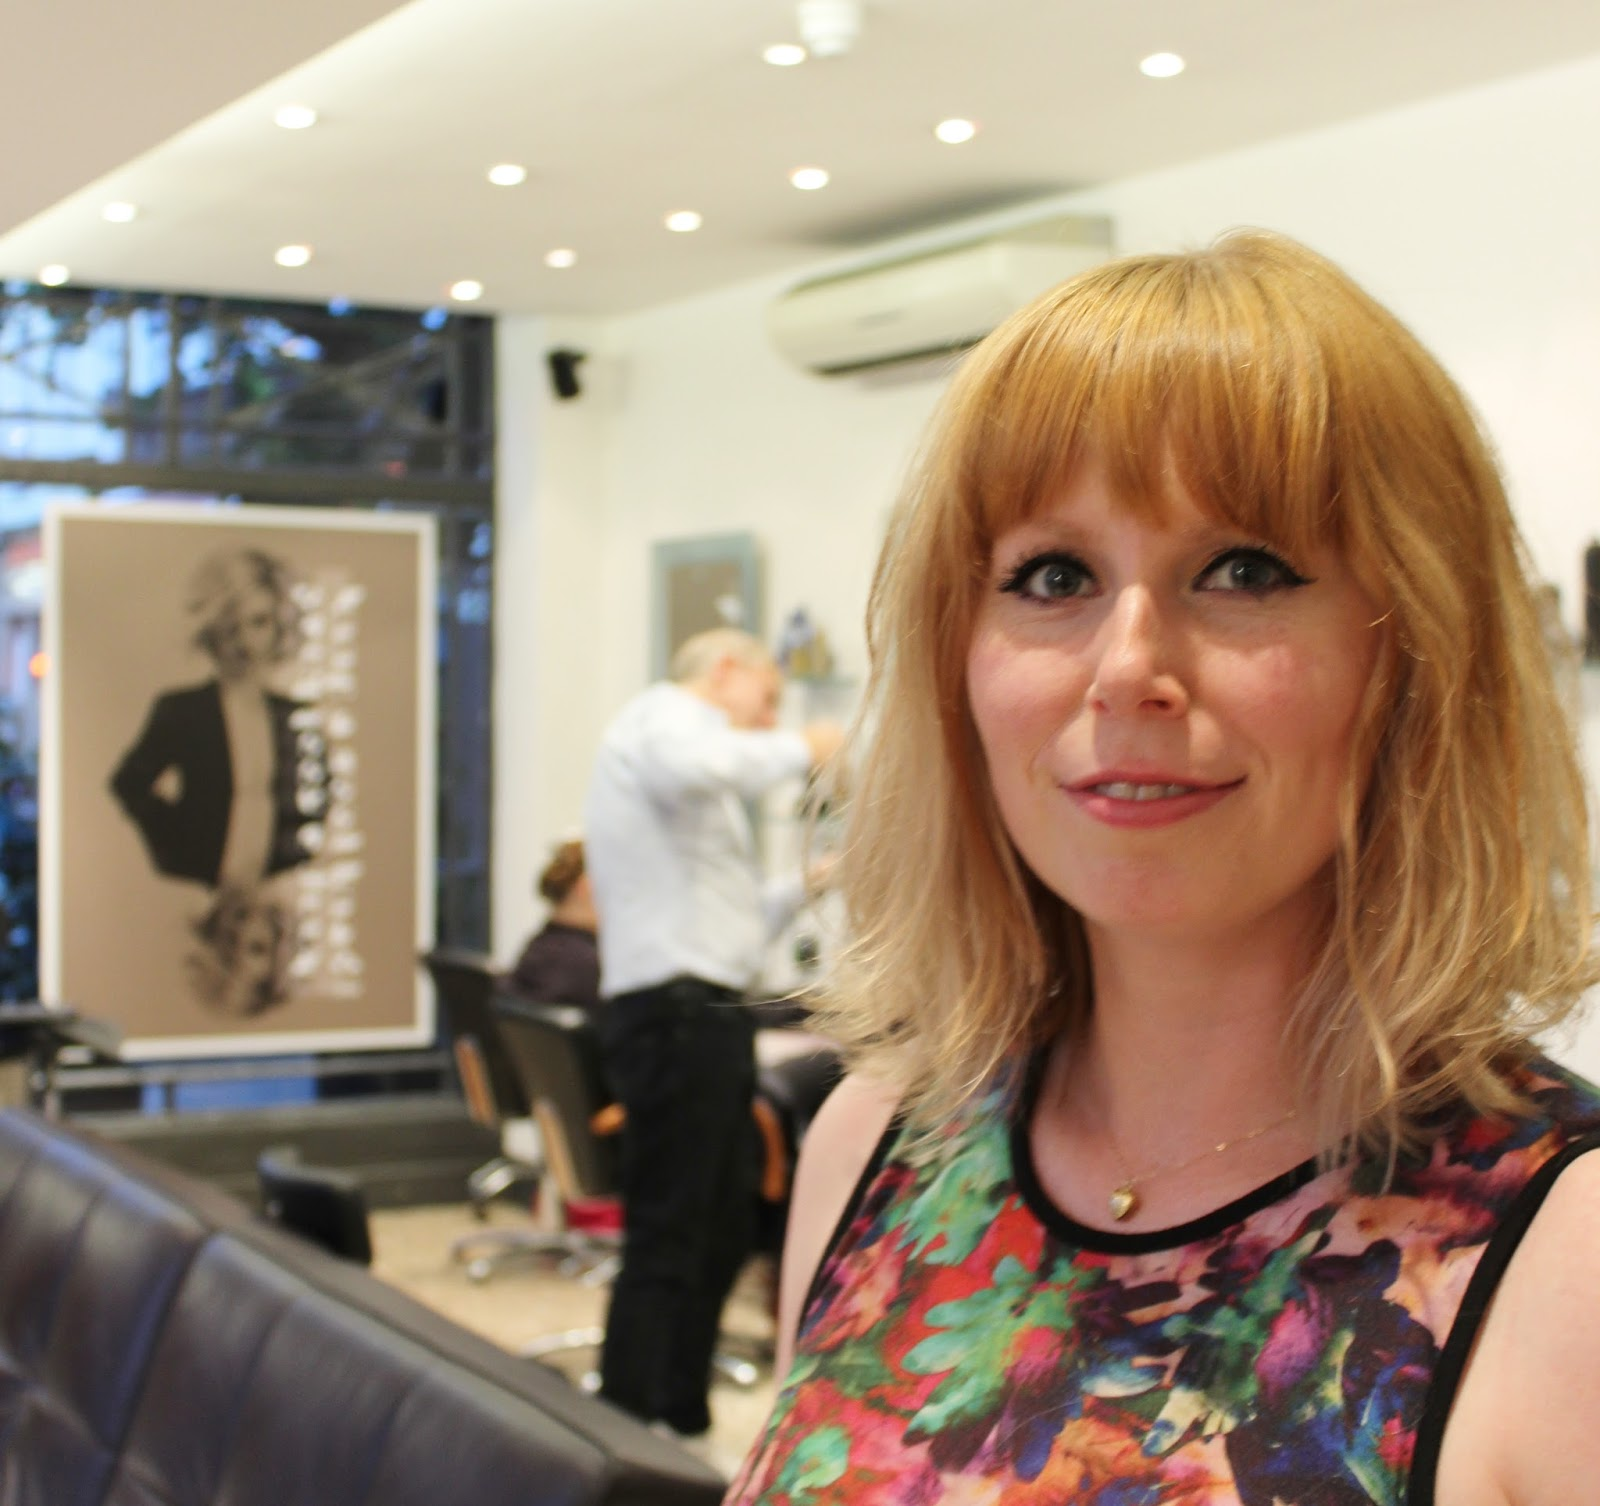 Andrew Jose London hair salon finished cut and colour